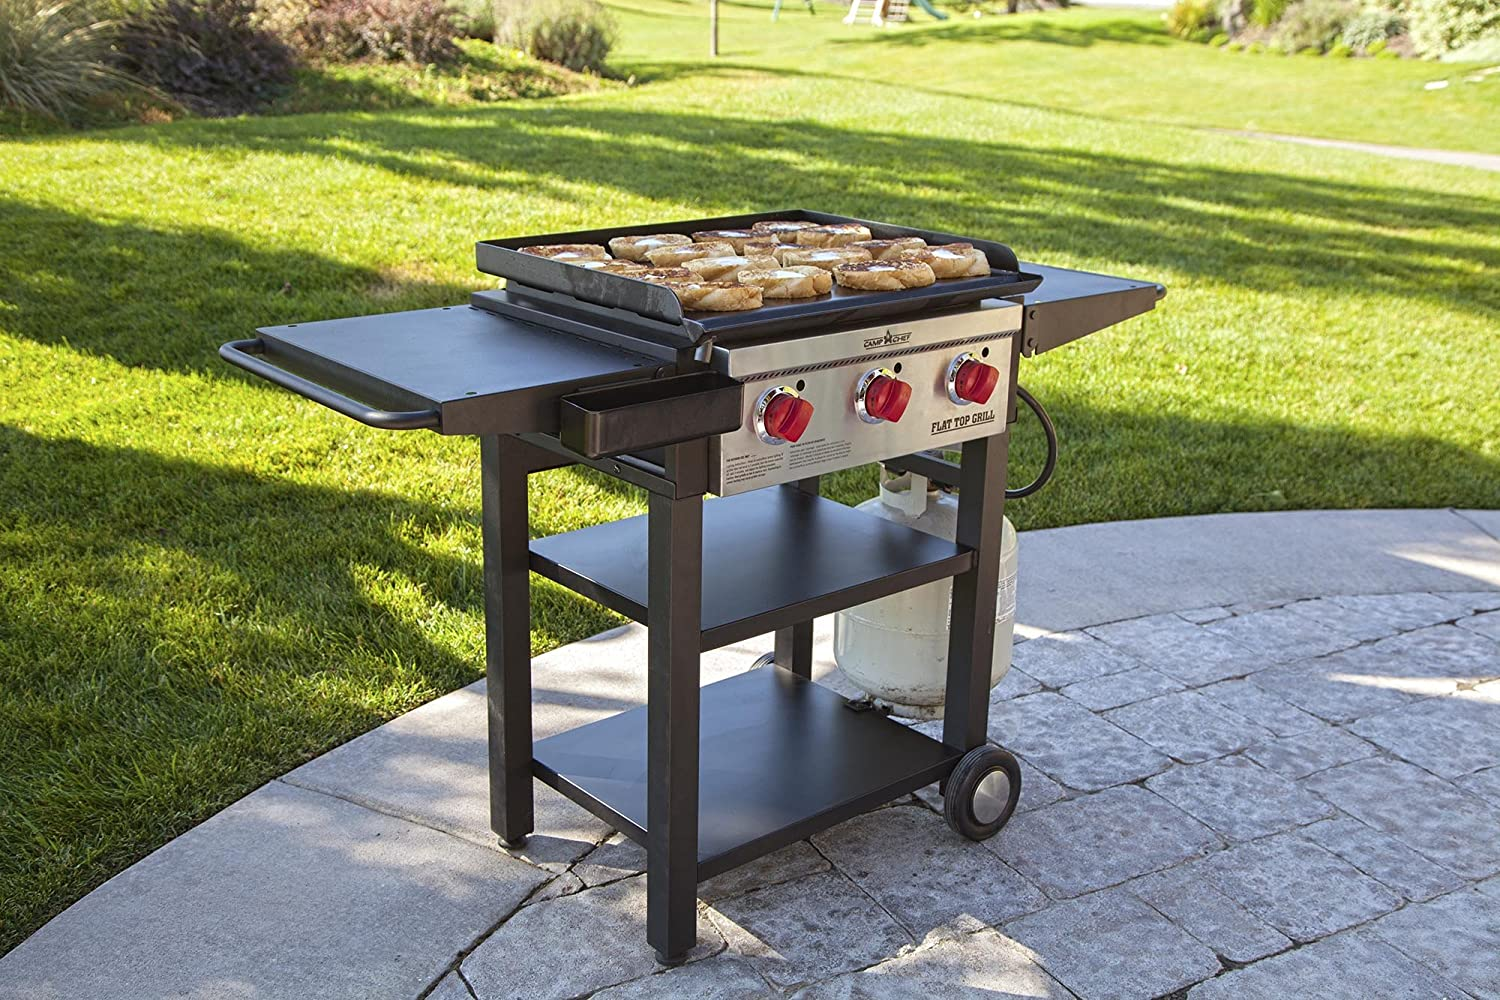 Amazoncom Camp Chef Flat Top Grill 475 Black FTG475 Garden